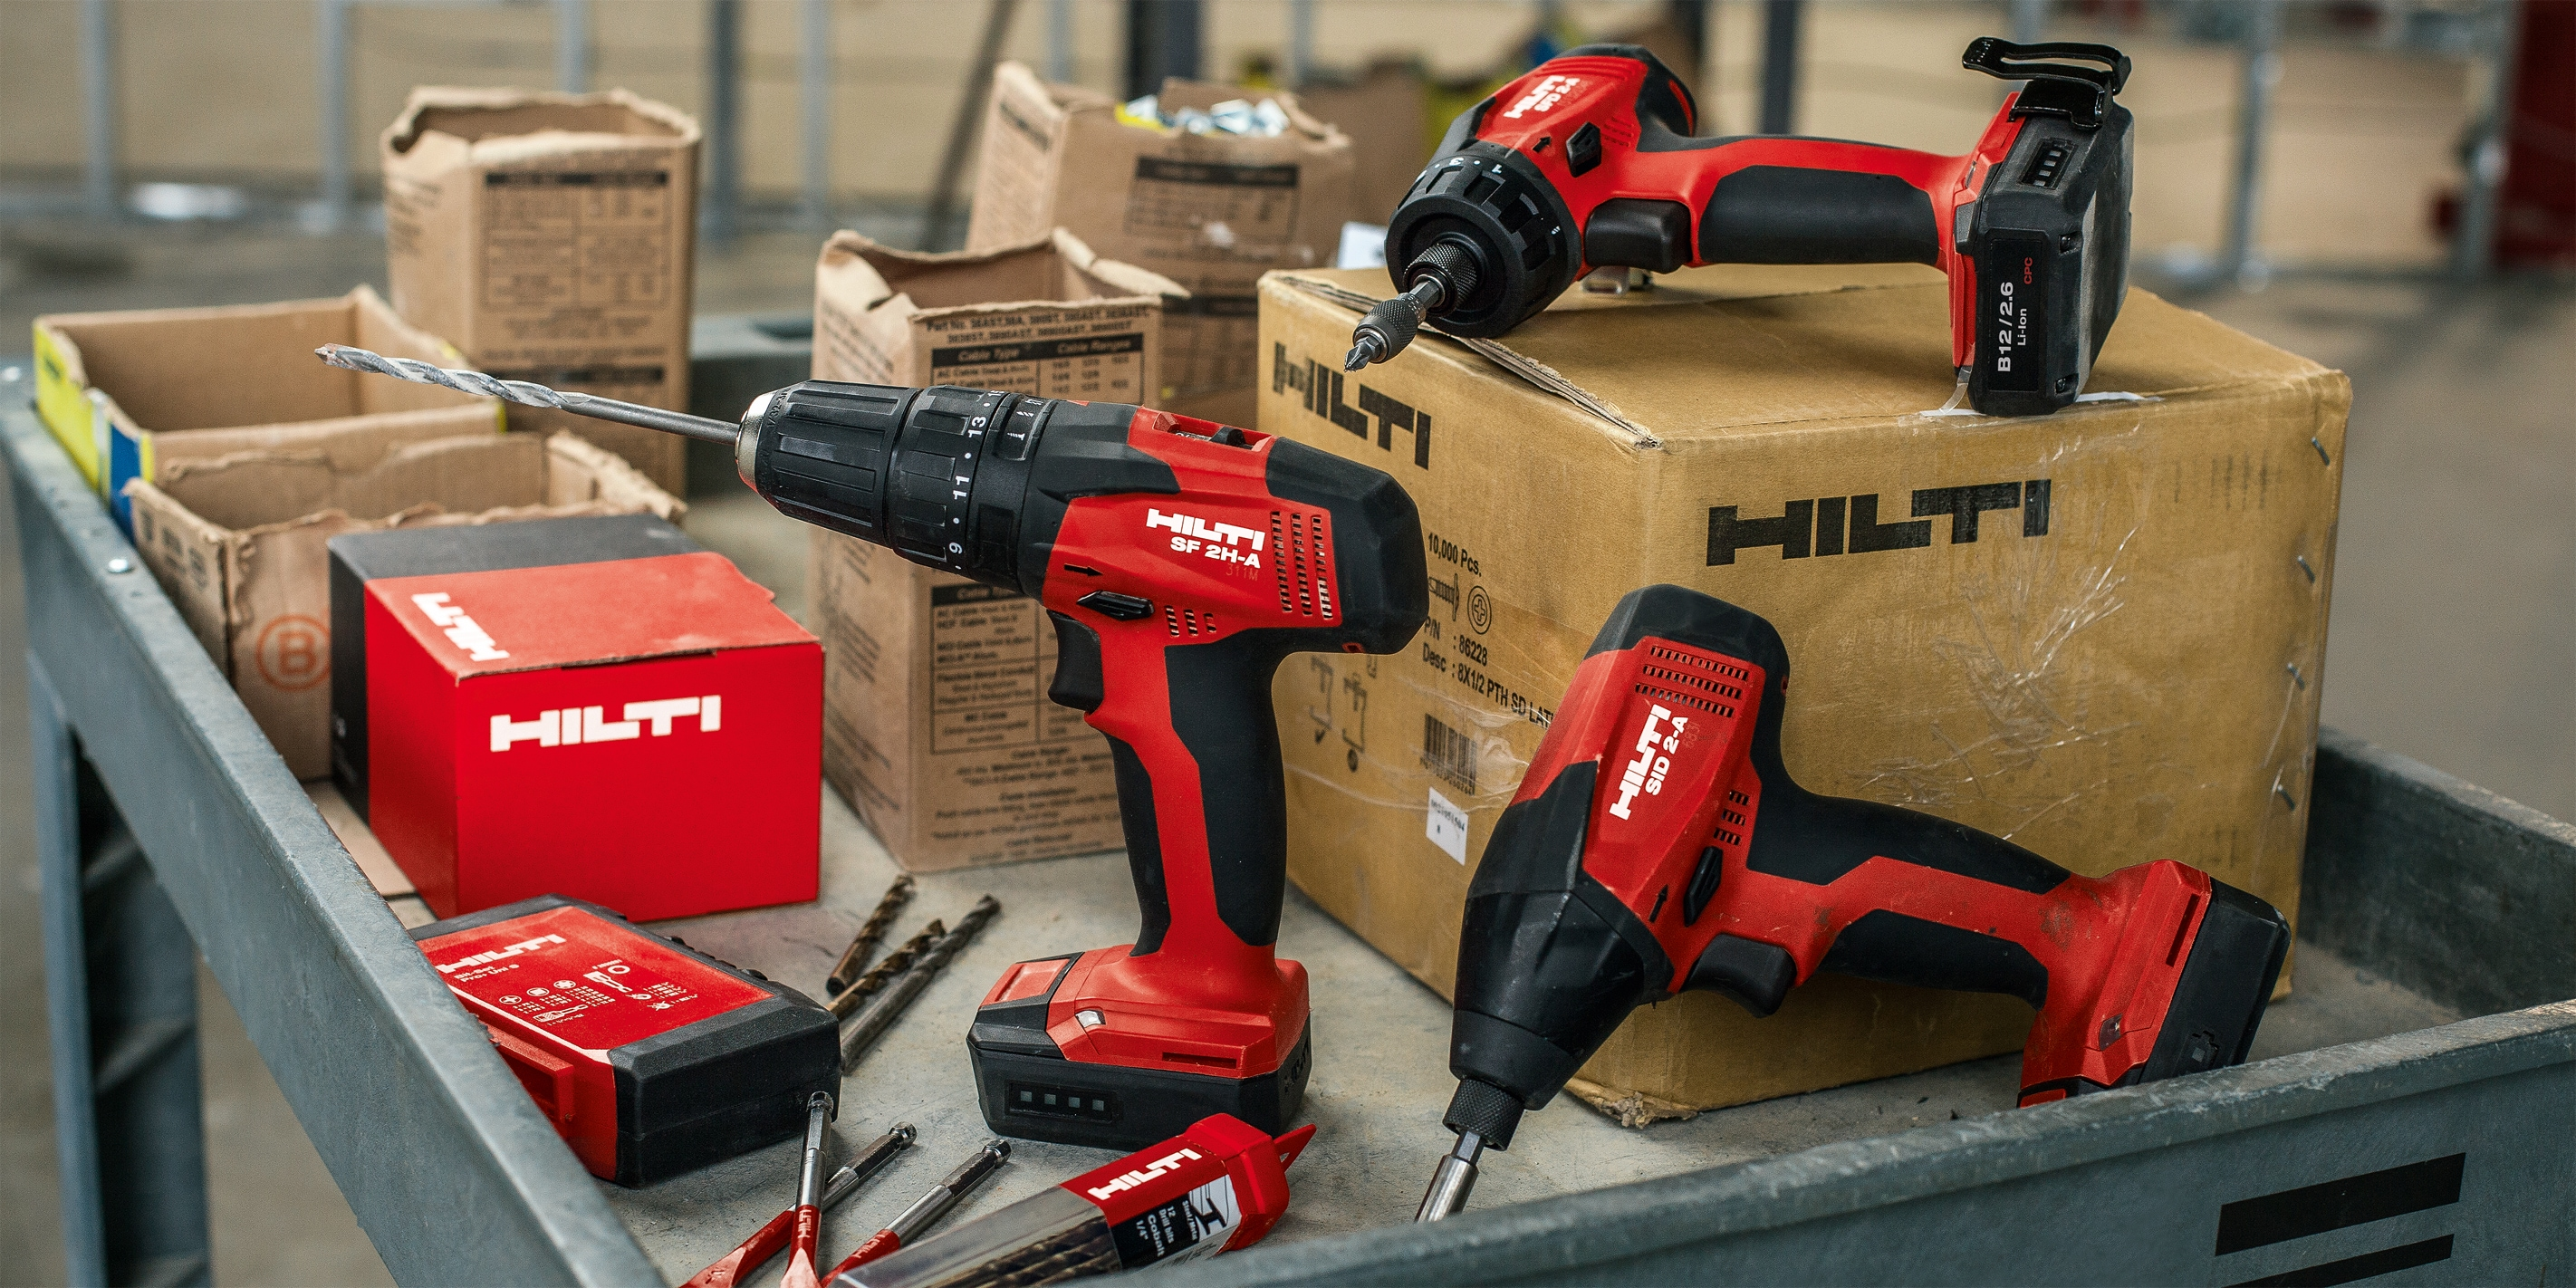 Hilti For The Holidays